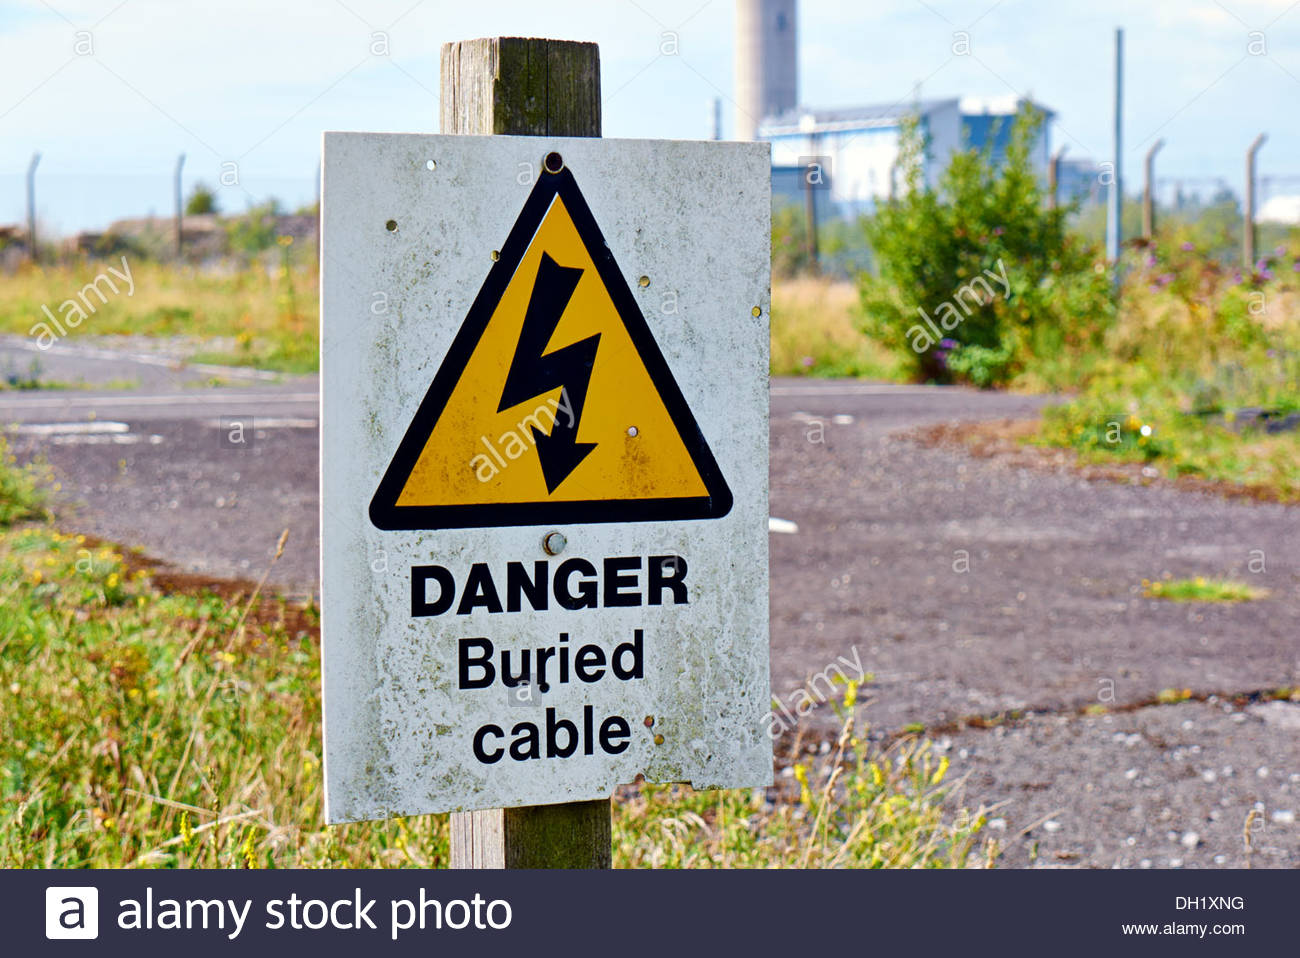 Buried Cable Stockfotos & Buried Cable Bilder - Alamy